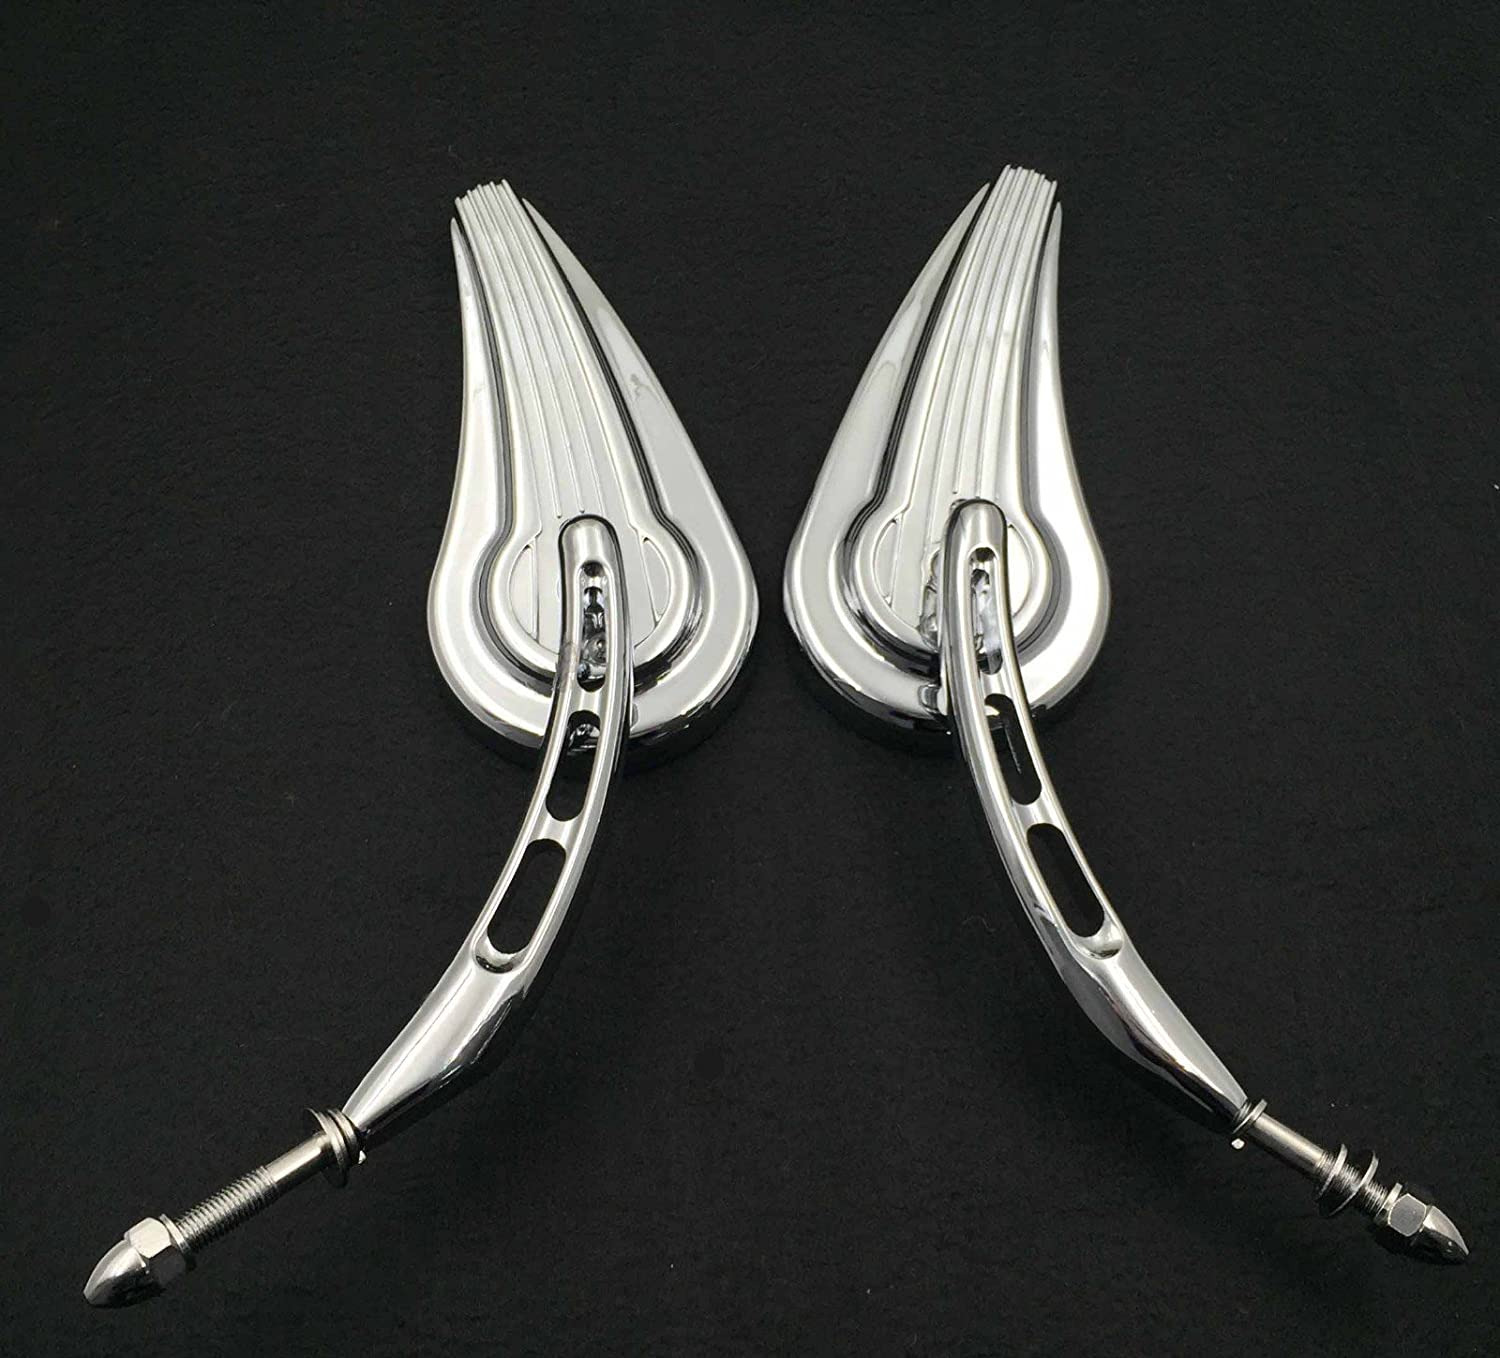 except VRSCF,2014-later FLHTKSE,FLHRSE6, FLHR and FLHRC models and XL1200X mounted below the handlebars HTT Motorcycle Chrome Raindrop Side Mirrors For Harley Davidson 1982-later all models